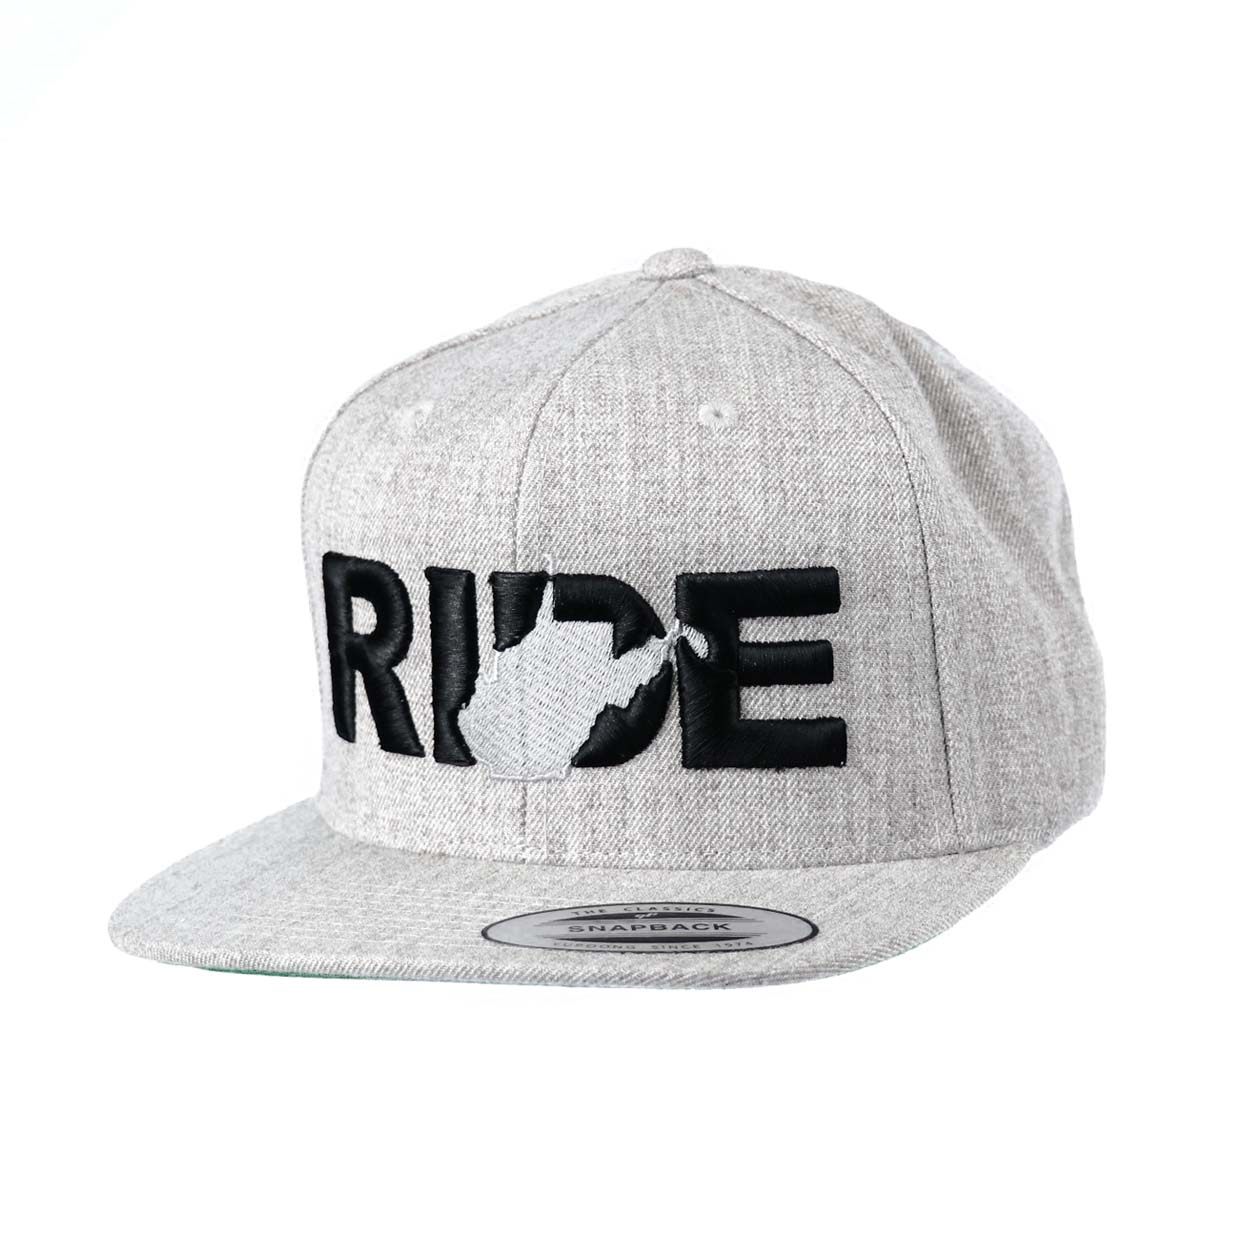 Ride West Virginia Classic Embroidered  Snapback Flat Brim Hat Gray/Black